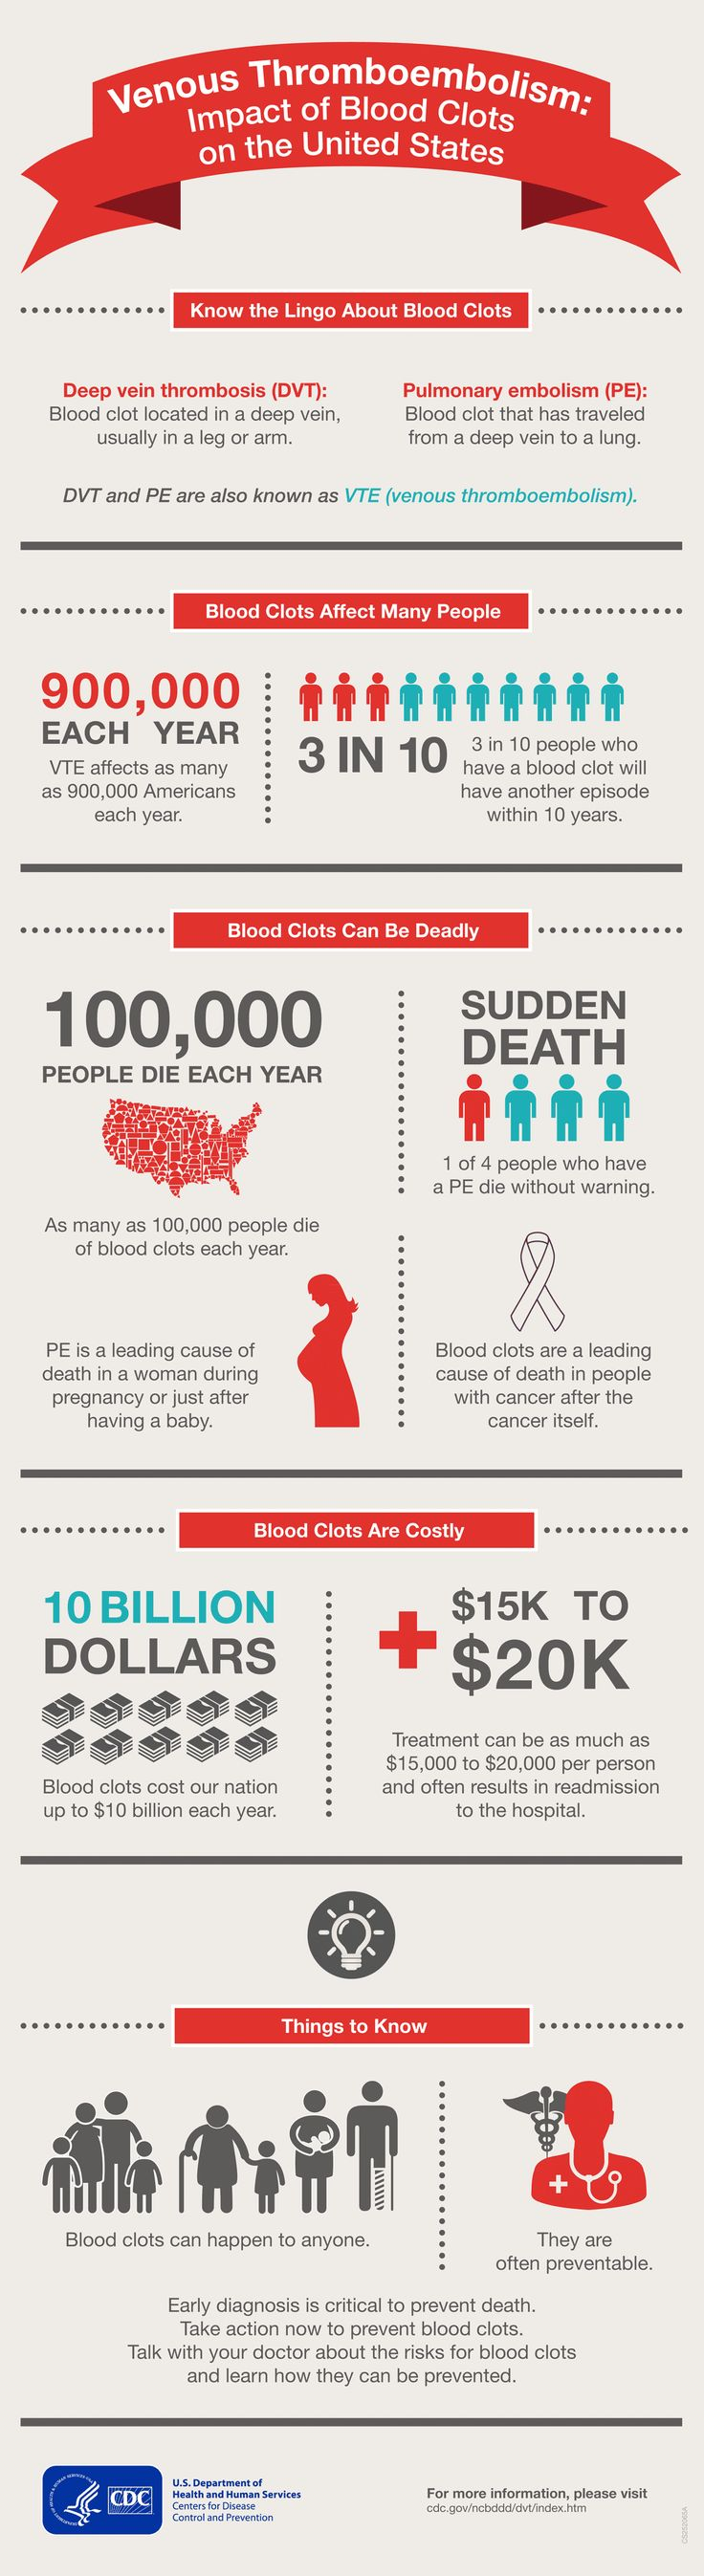 Blood clots and cancer relationship doctor answers on - Vte Impact Of Blood Clots On The Us Infographic